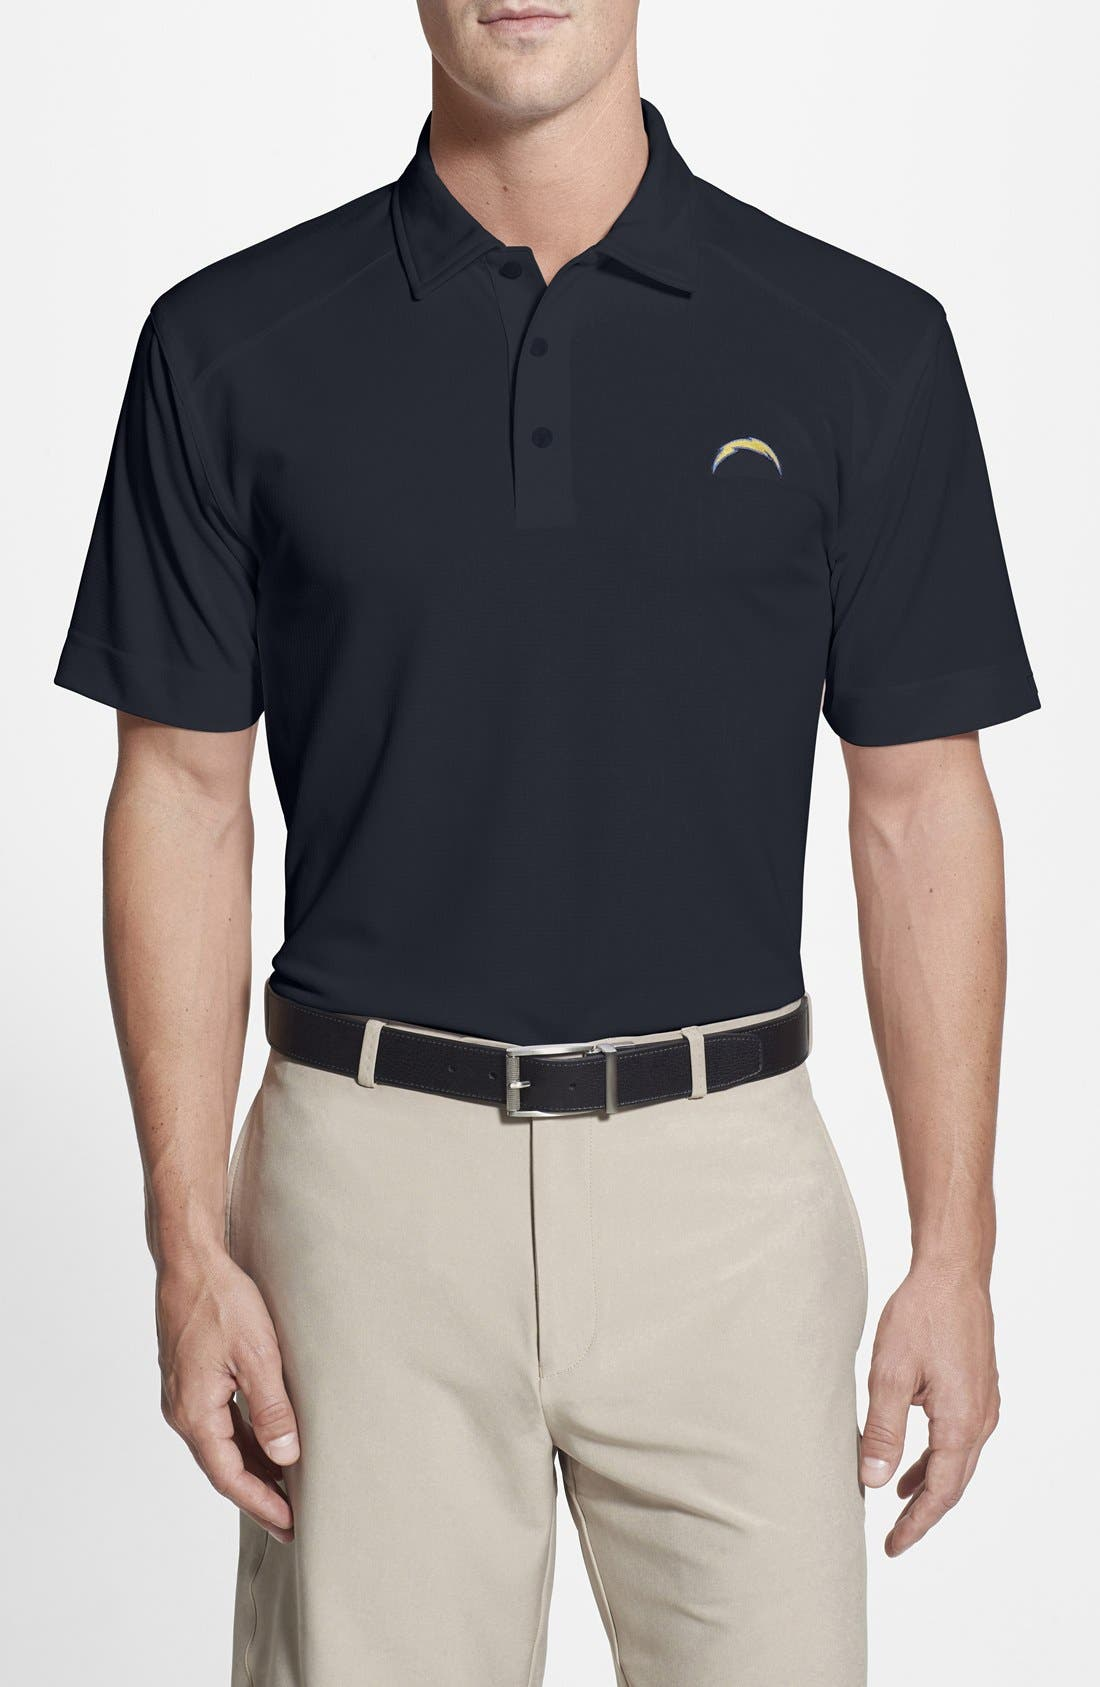 Alternate Image 1 Selected - Cutter & Buck San Diego Chargers - Genre DryTec Moisture Wicking Polo